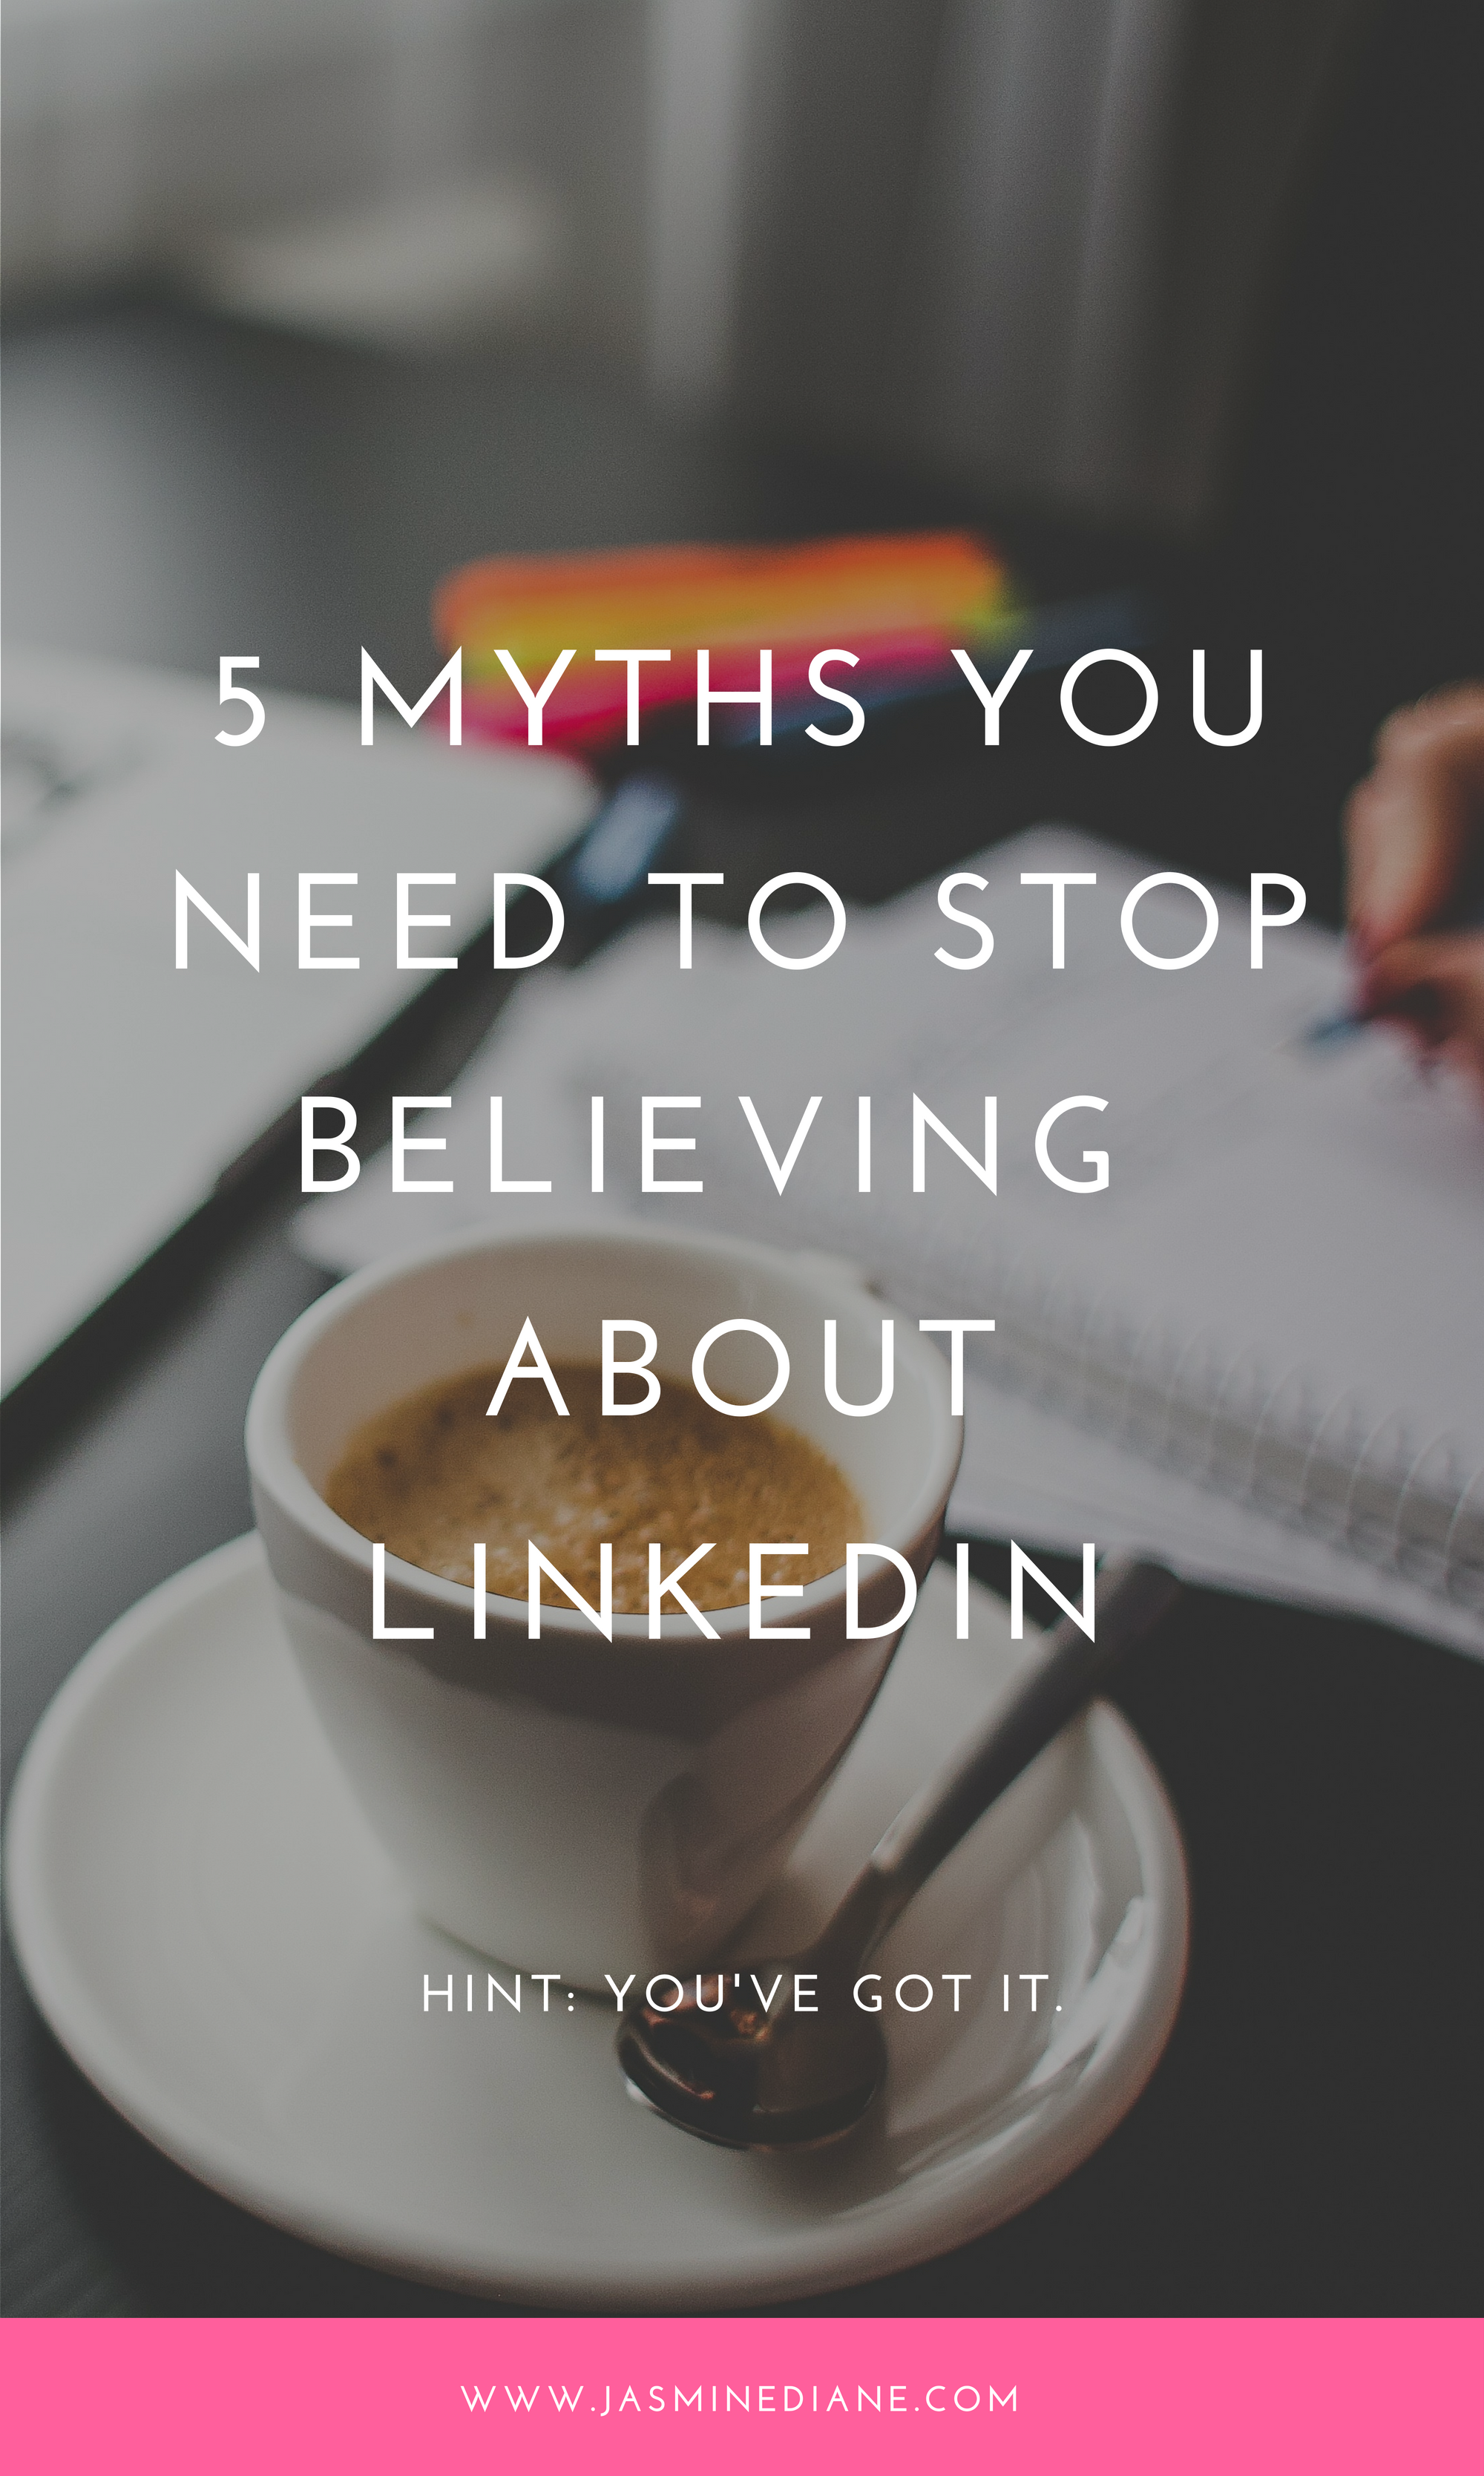 5 Myths You Need to Stop BelievingAbout LinkedIn